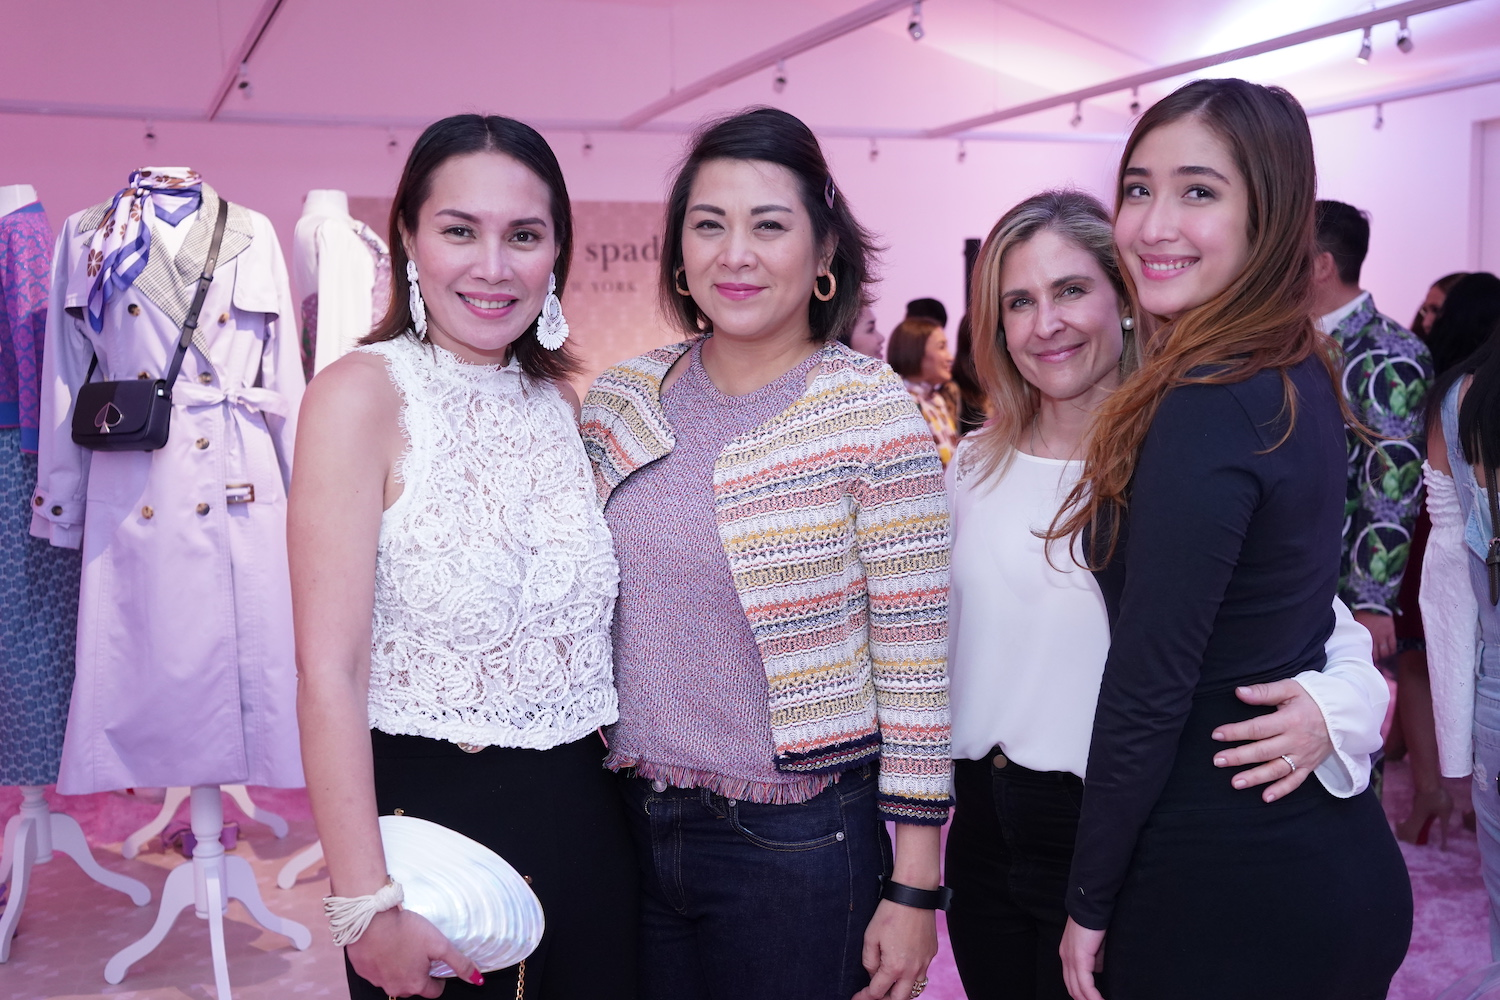 Jessica Guevarra-Everingham, Tina Pamintuan-Wheeler, Kourtney Camcam, and Dani Camcam.jpg